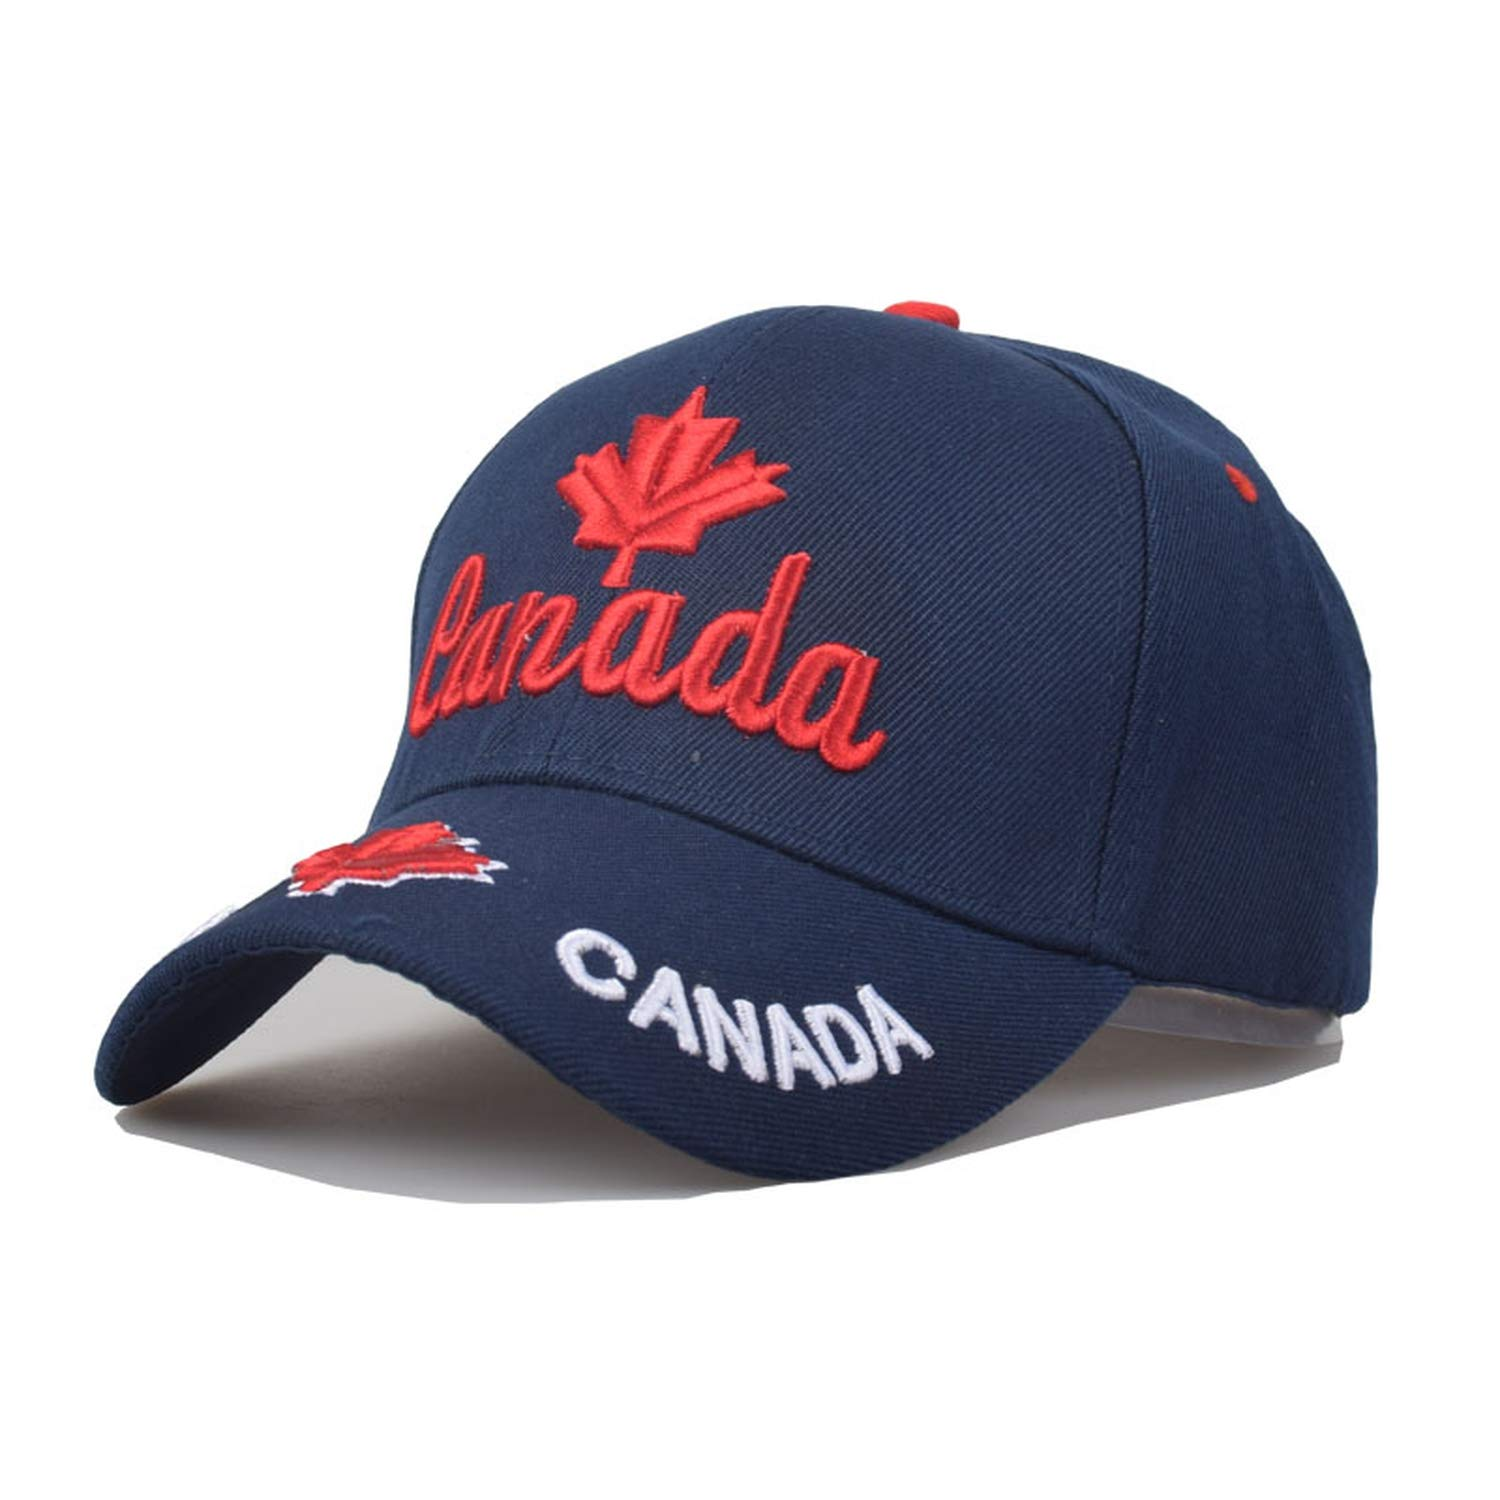 Canada Flag Eagle Embroidery Baseball Cap Cotton Cap Casquette Hat Fitted Casual Gorras Dad Hats for Men Women at Amazon Womens Clothing store: